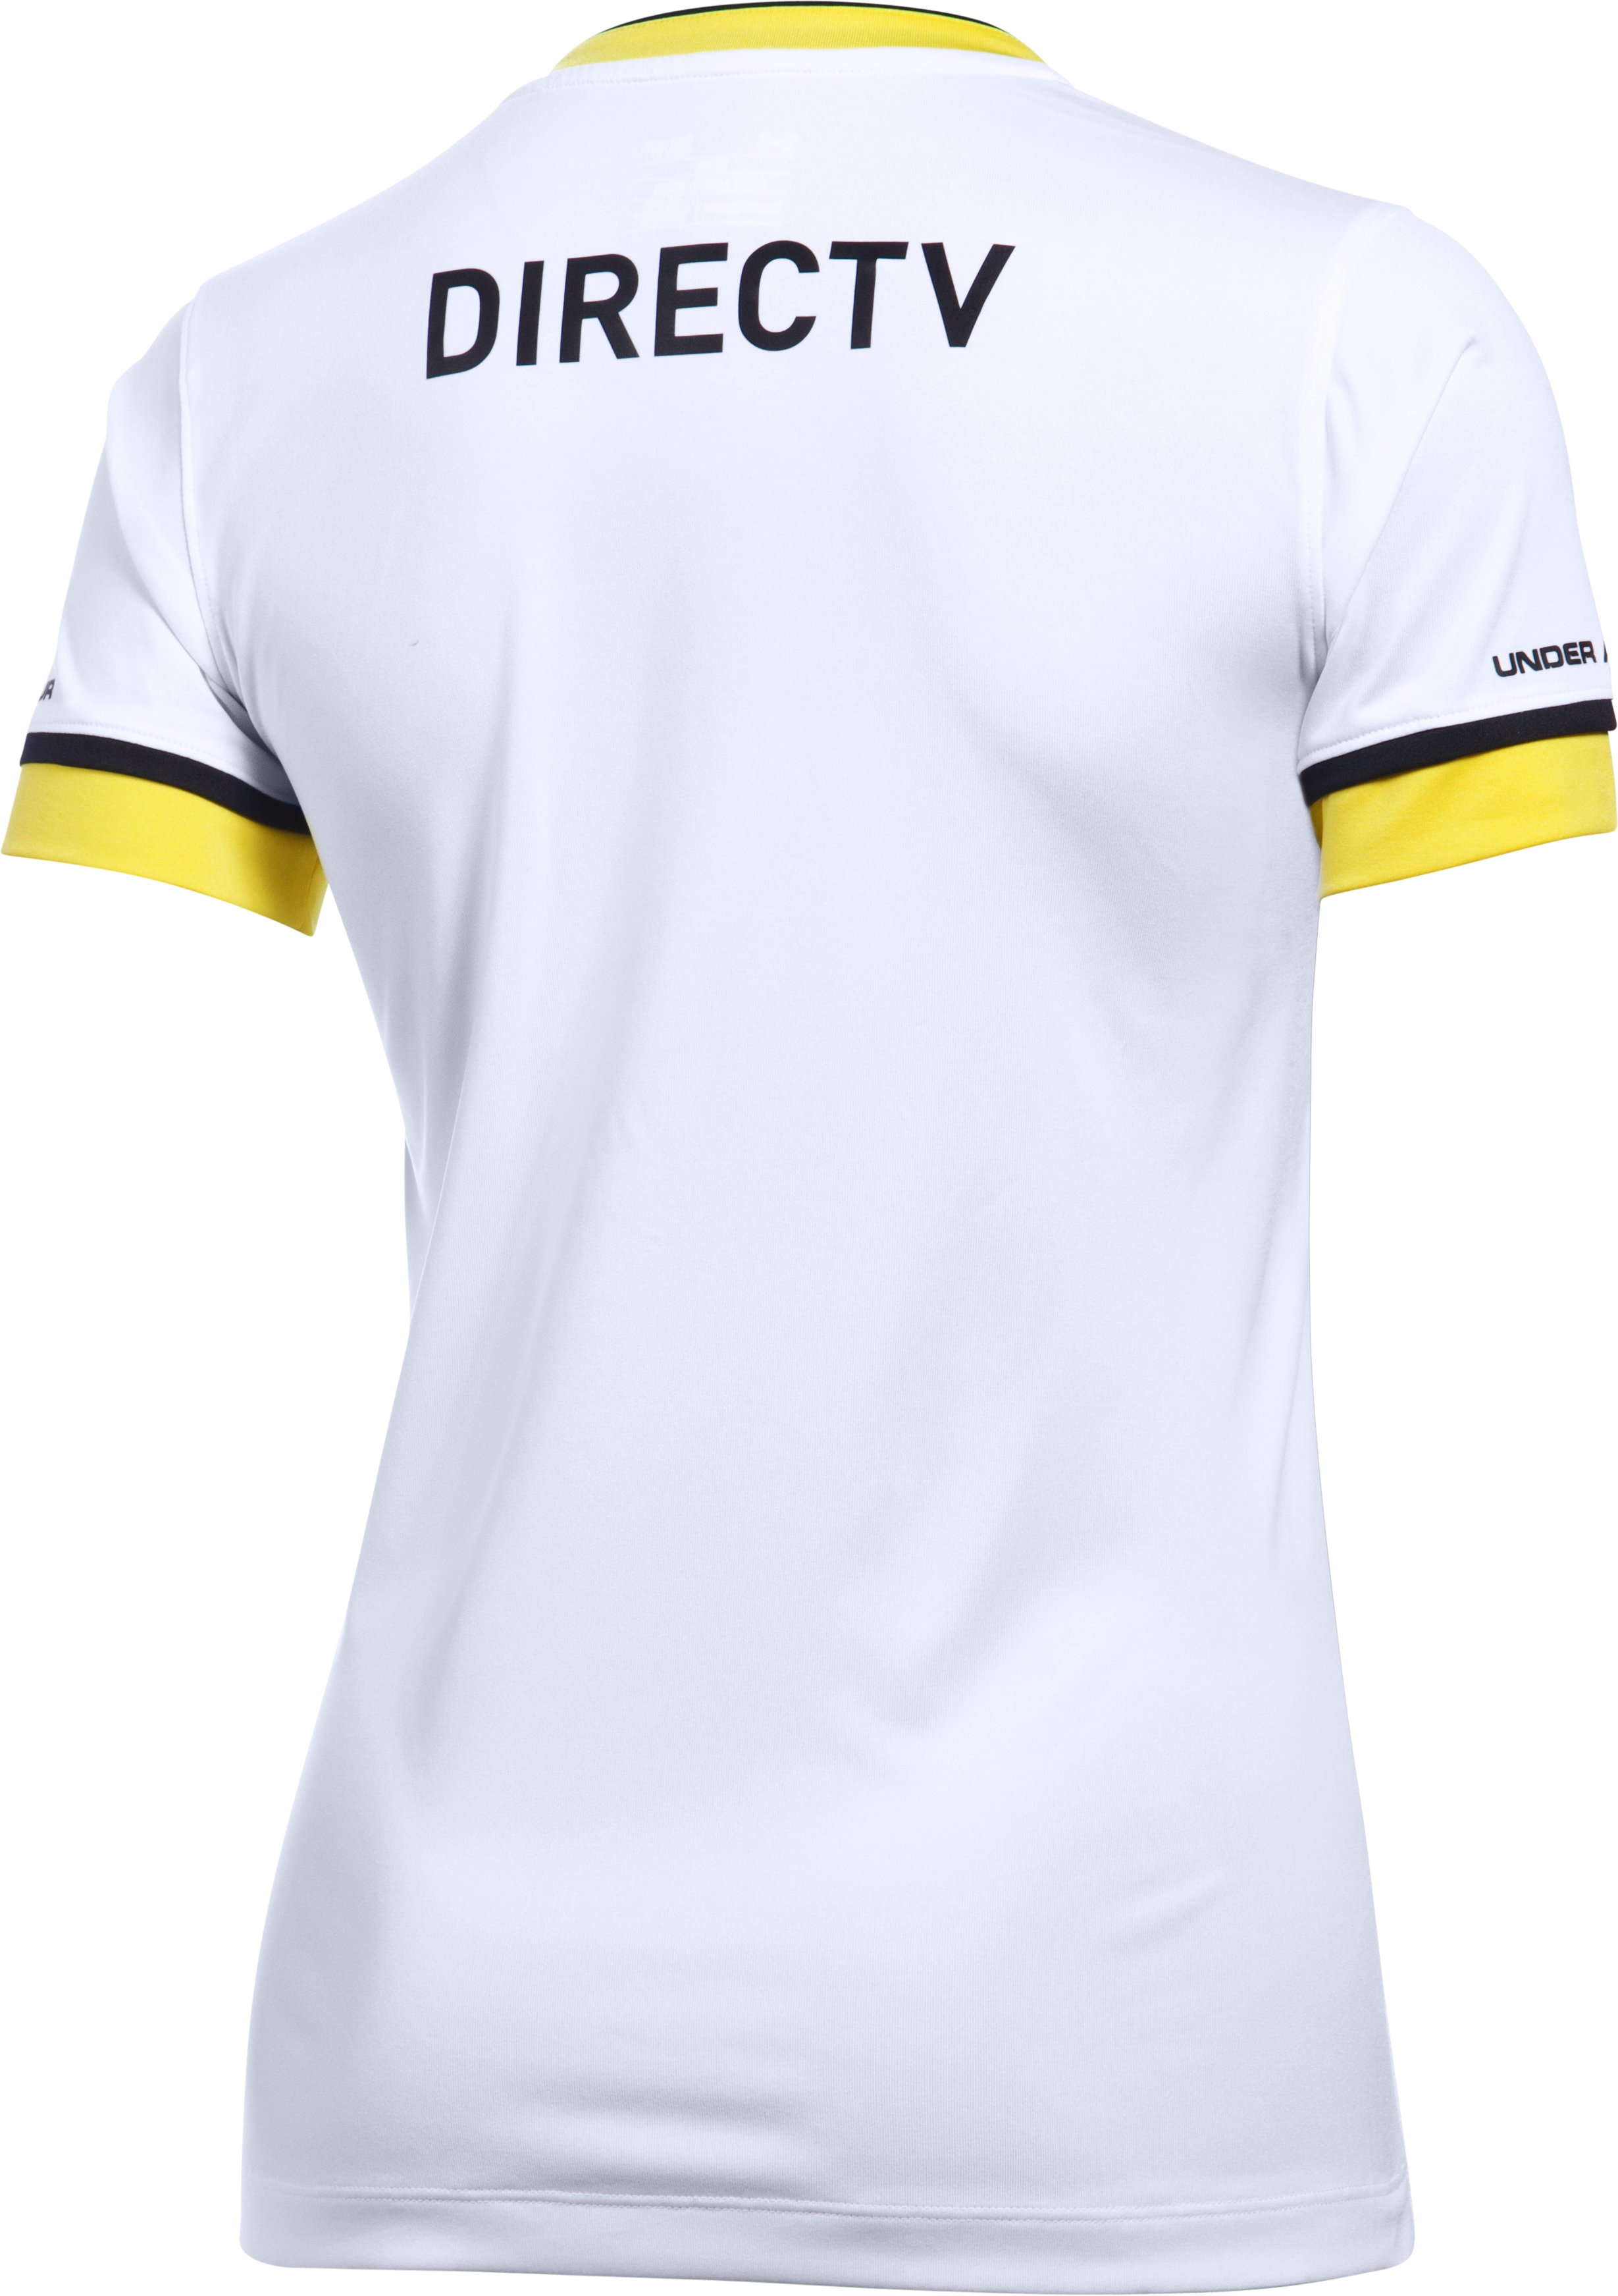 Women's Colo Colo UA Replica Home/Away Jersey, White